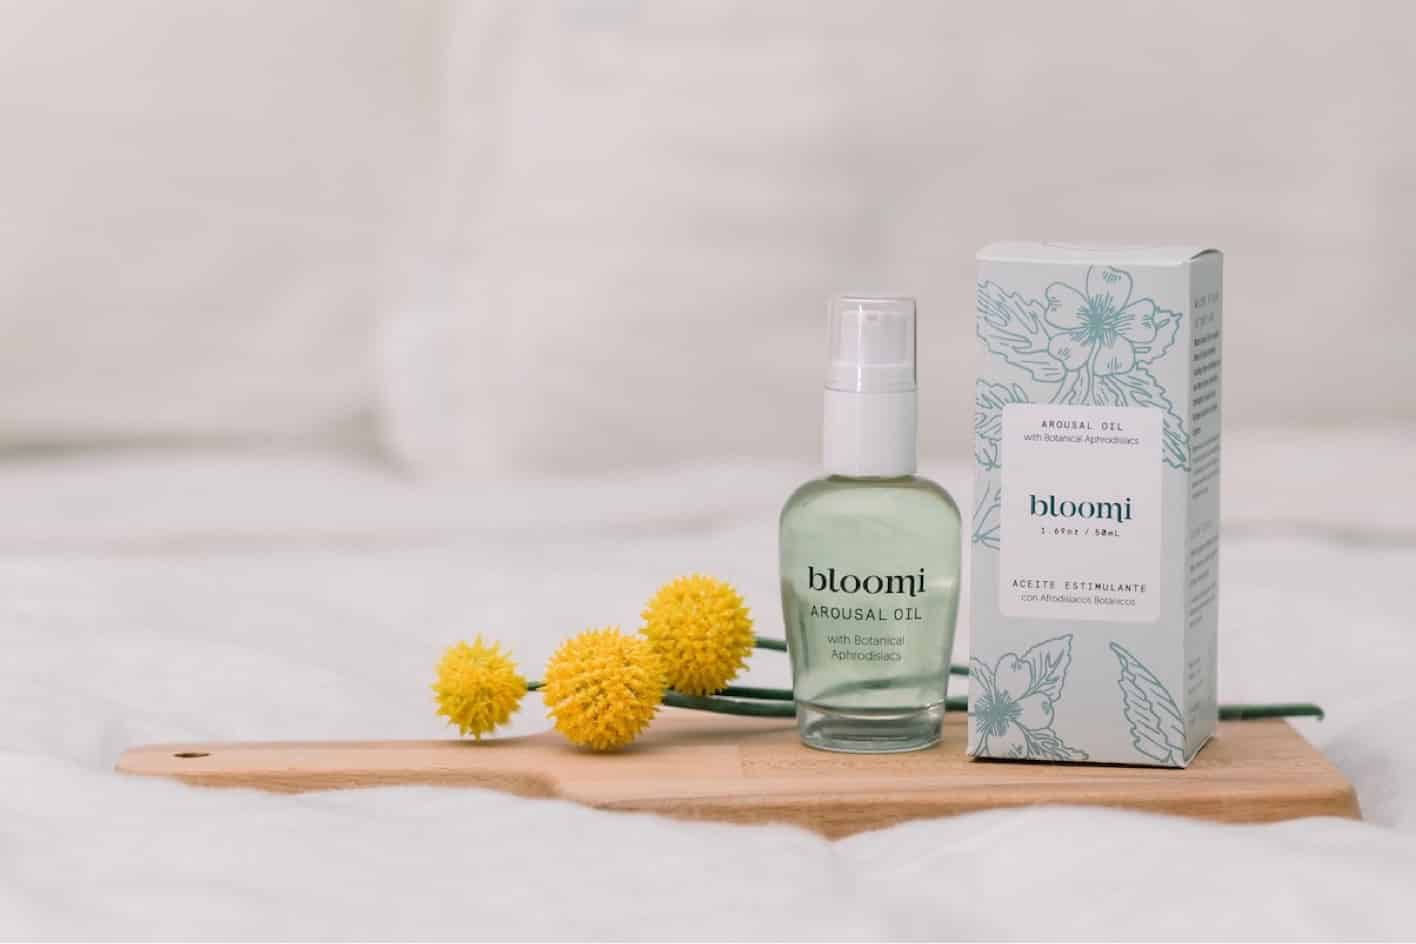 The Bloomi oil sits on a board, showing off the pack and label design